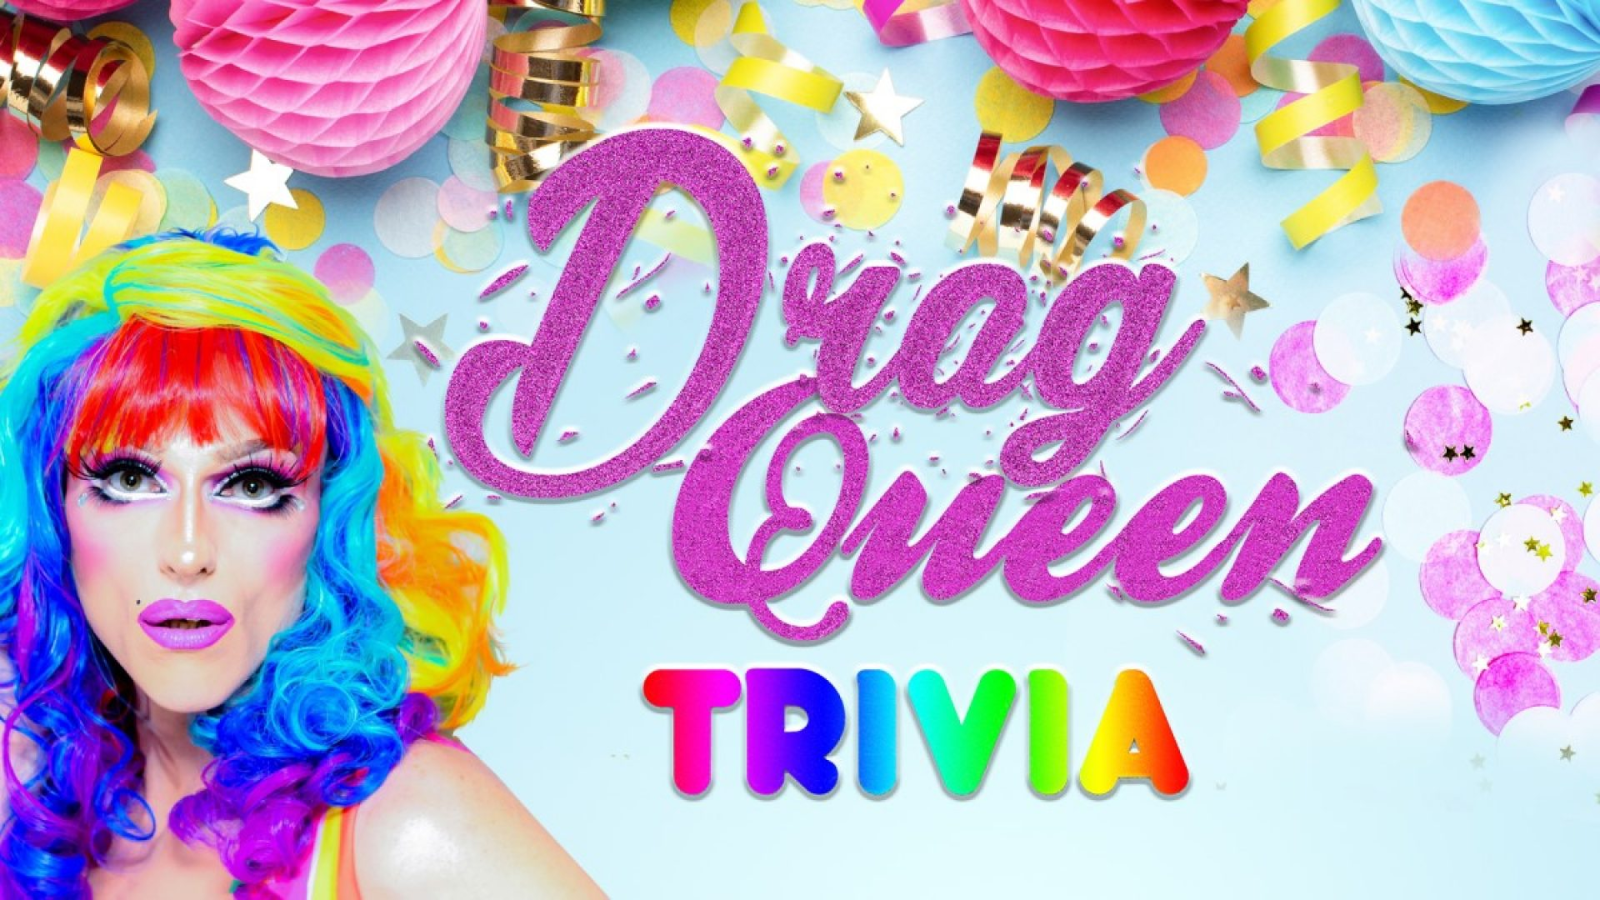 Live Shows: Drag Queen Trivia - Nov 15 - Caboolture Sports Club